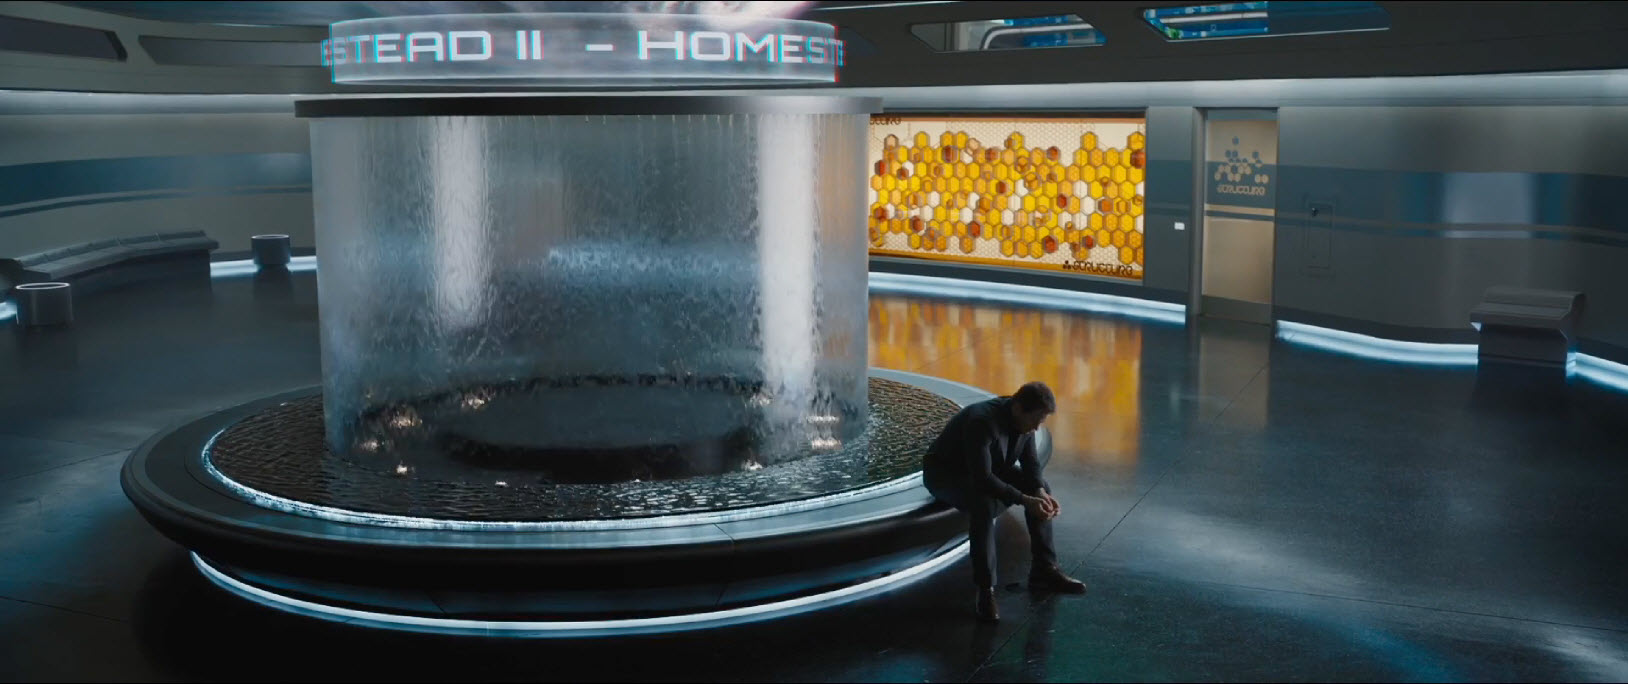 passengers pratt homestead images